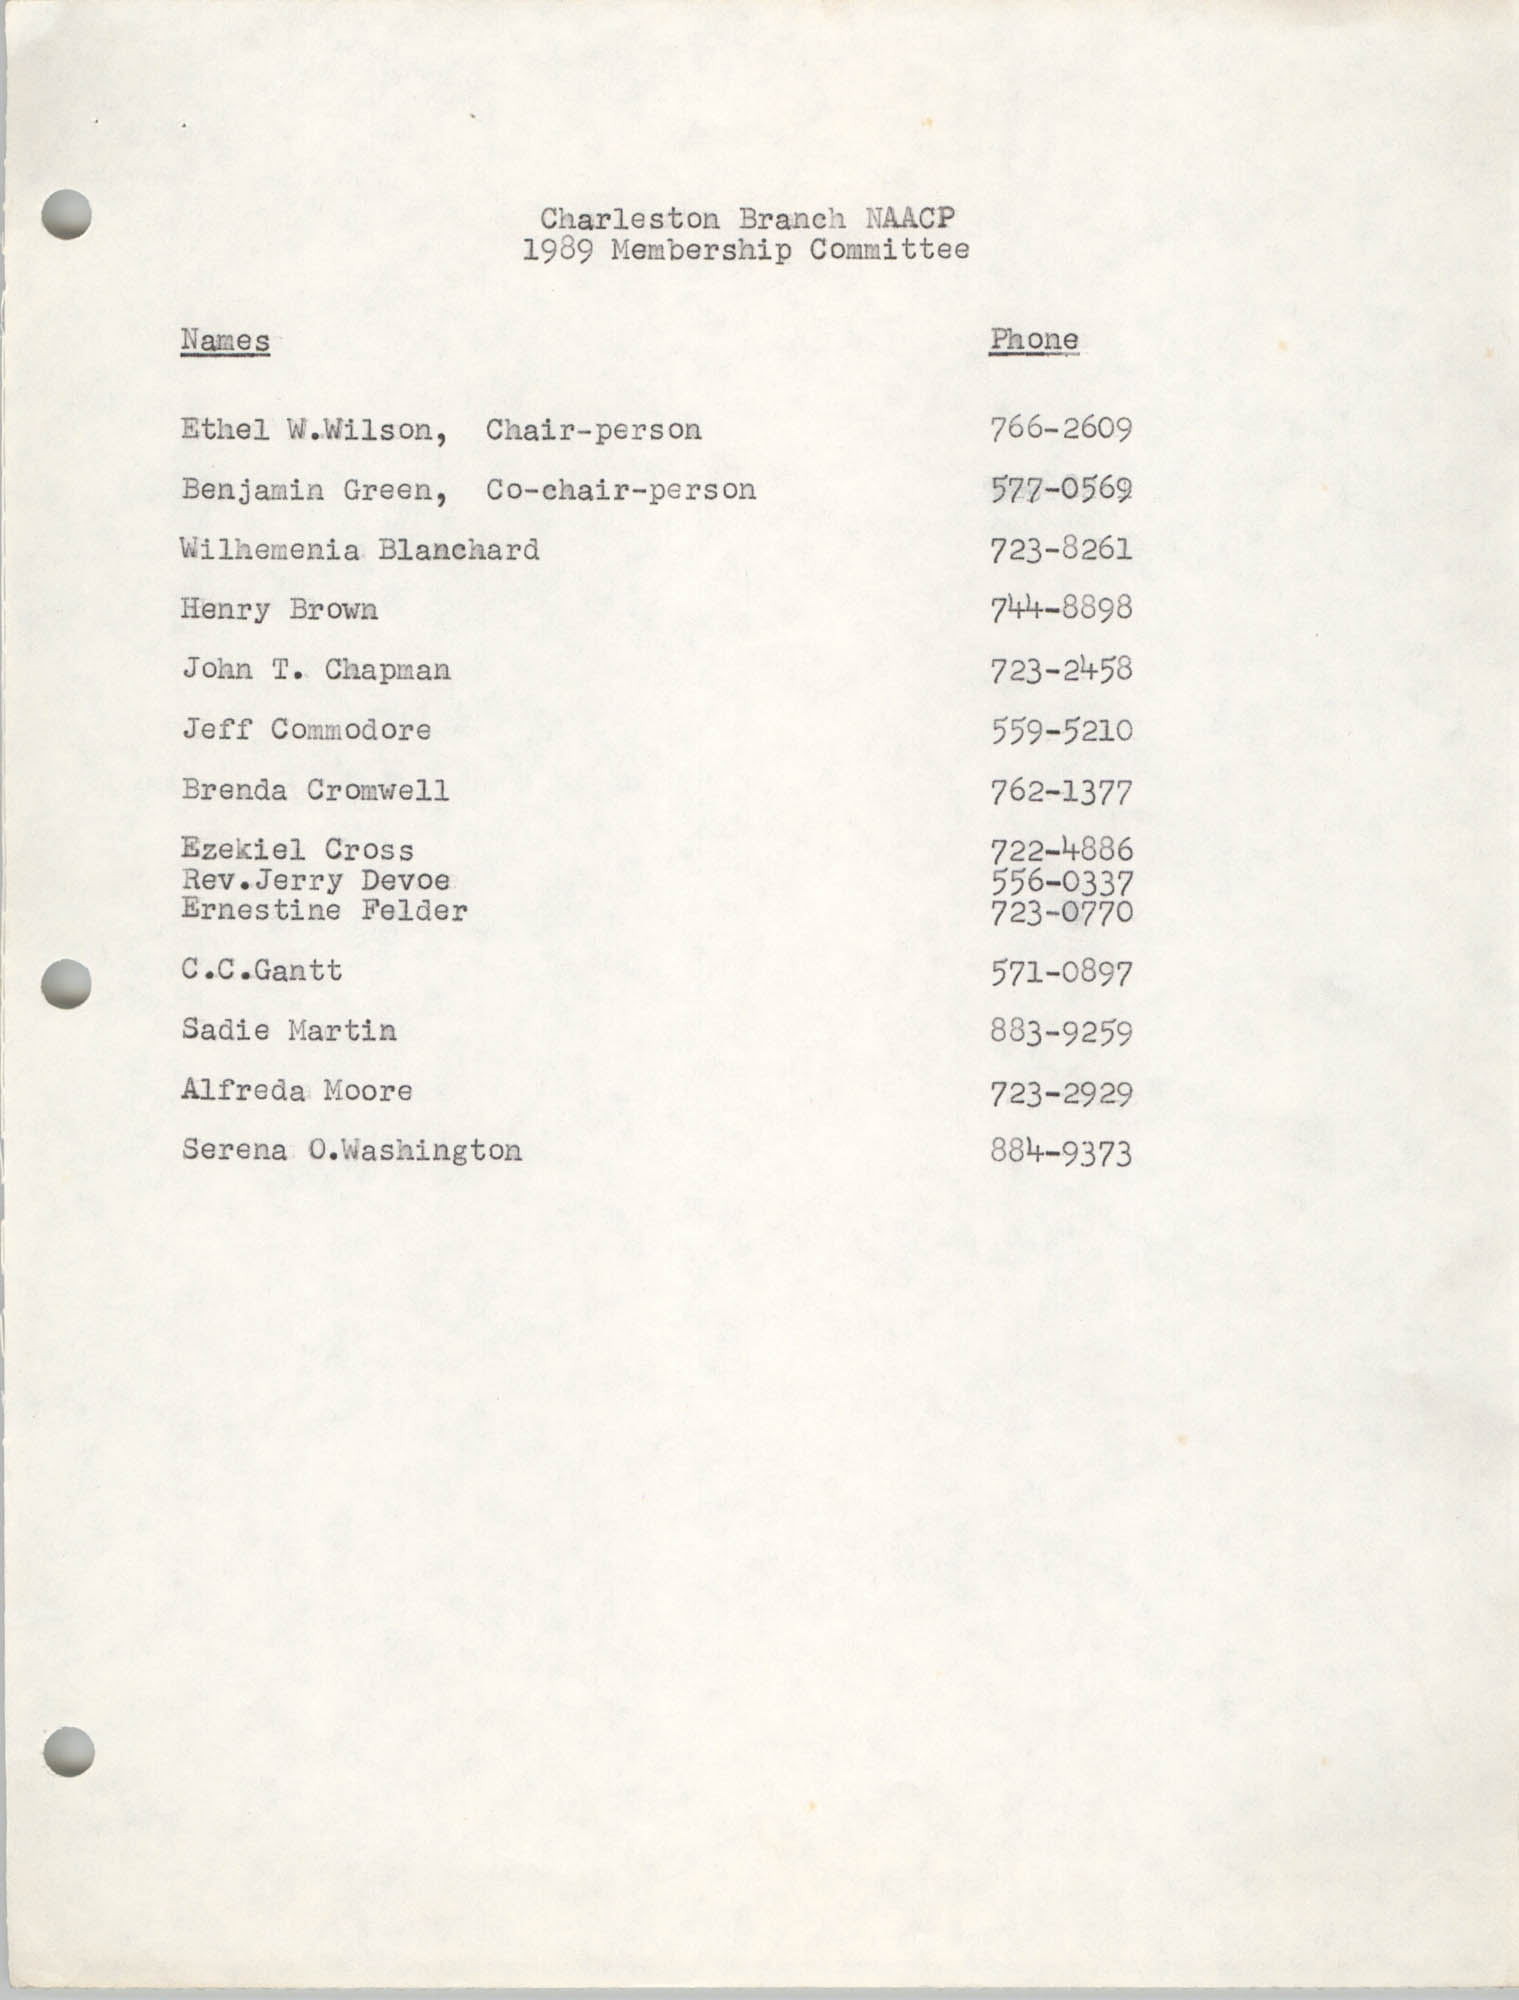 Membership Committee List, National Association for the Advancement of Colored People